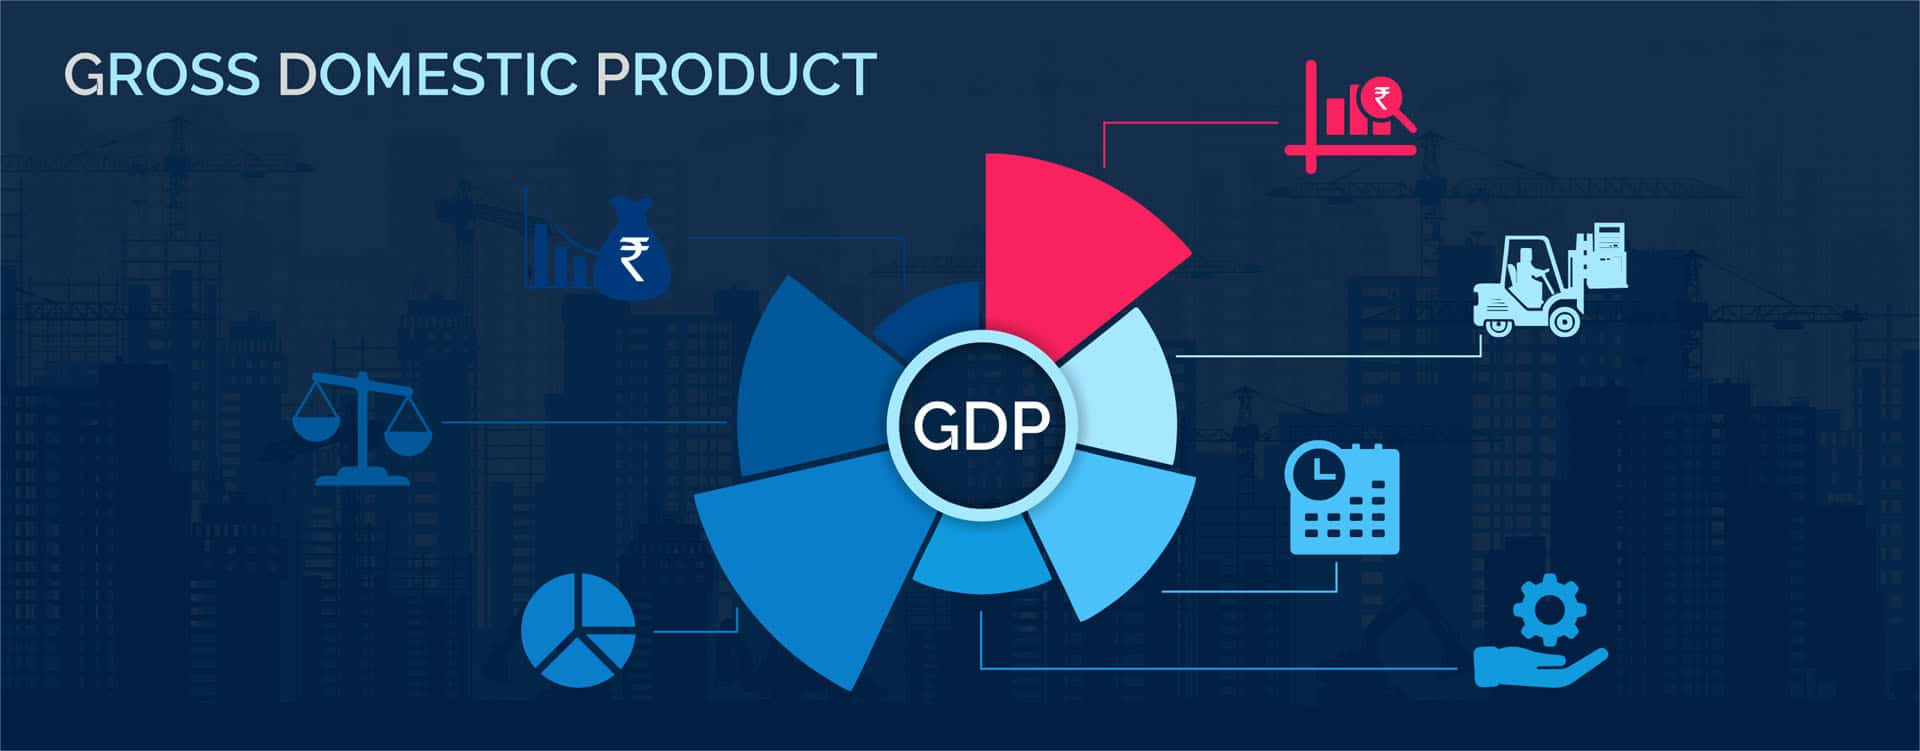 GDP- All you need to know